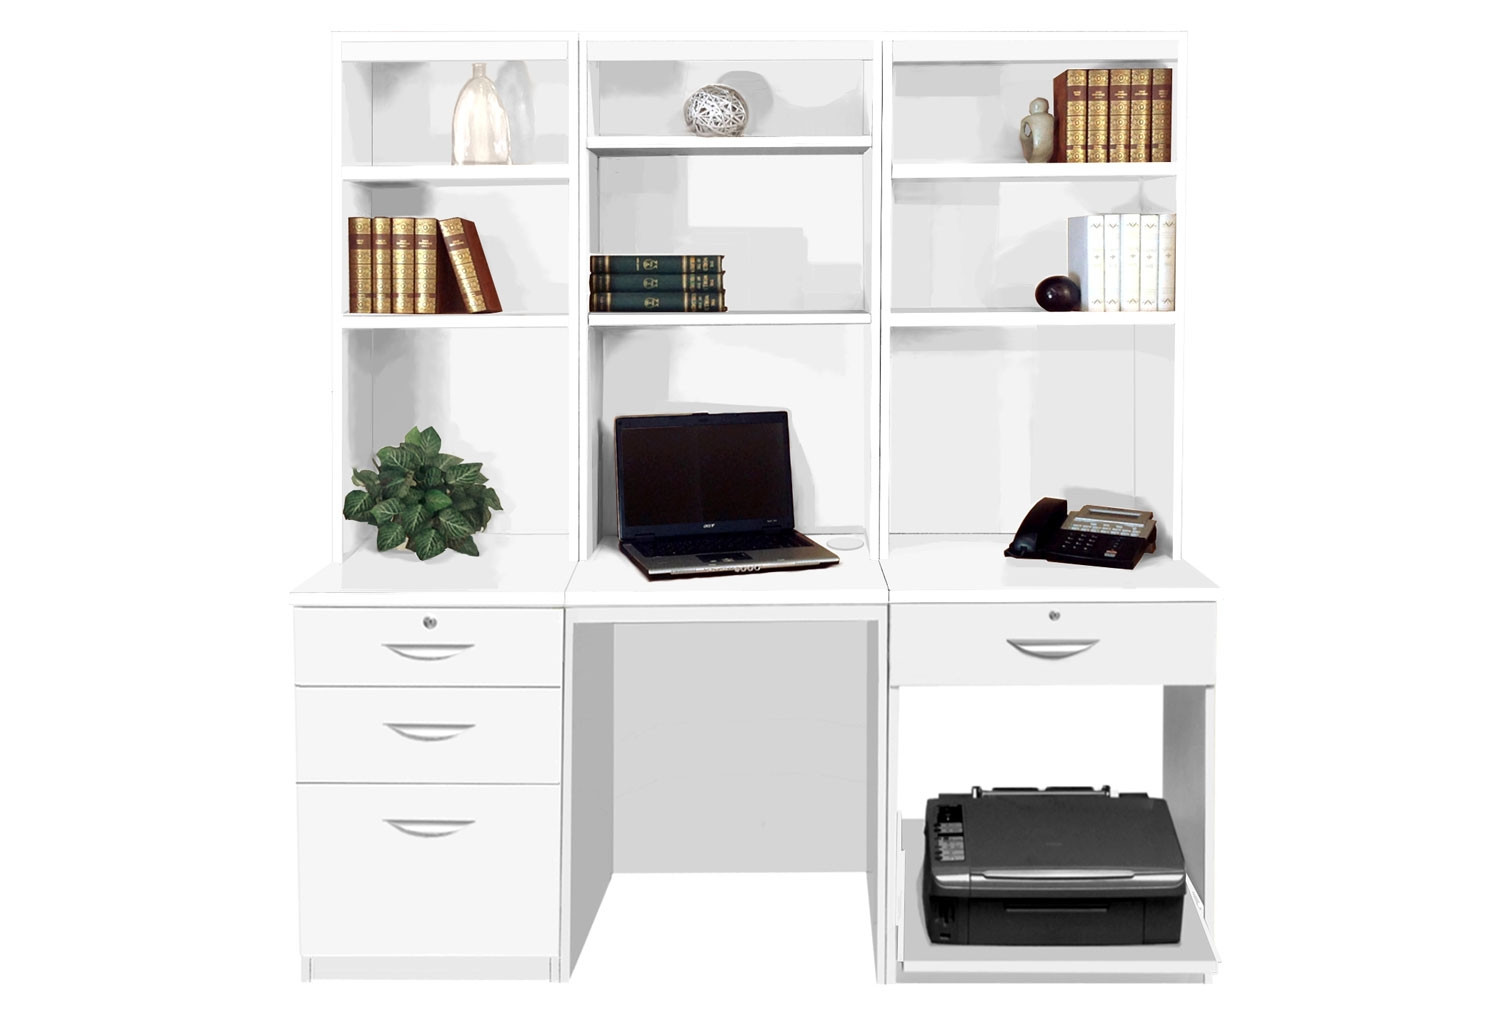 Small Office Desk Set With 3 1 Drawers Printer Shelf Hutch Bookcases White Furniture At Work